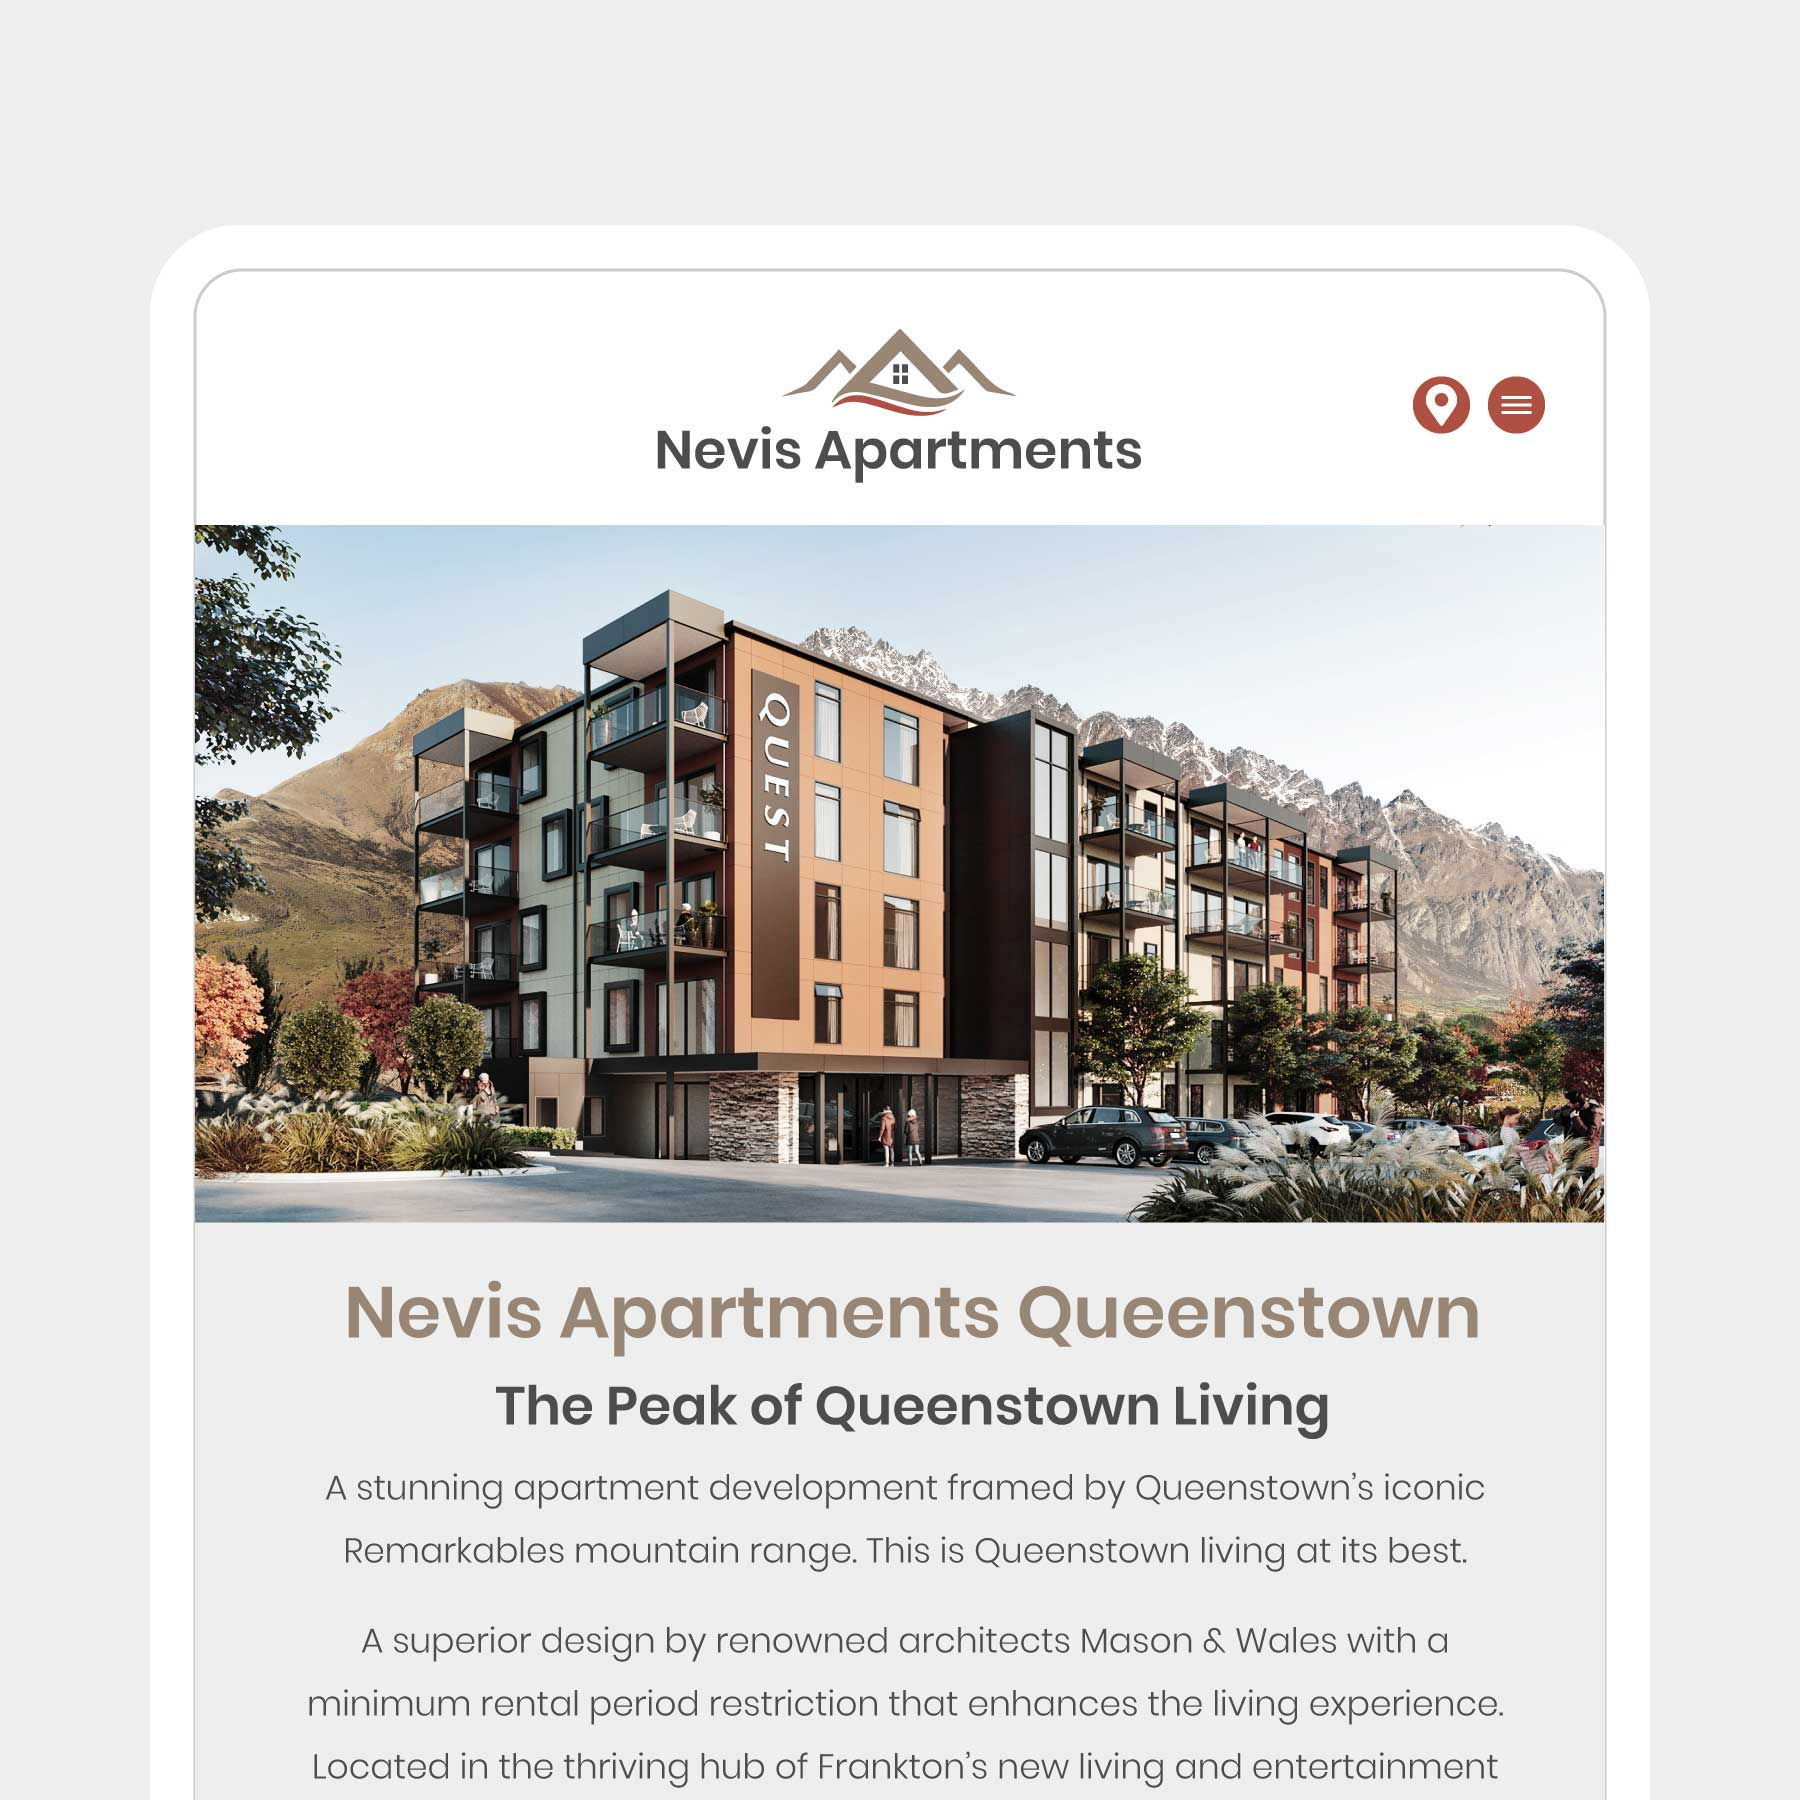 Nevis Apartments Queenstown Web Design